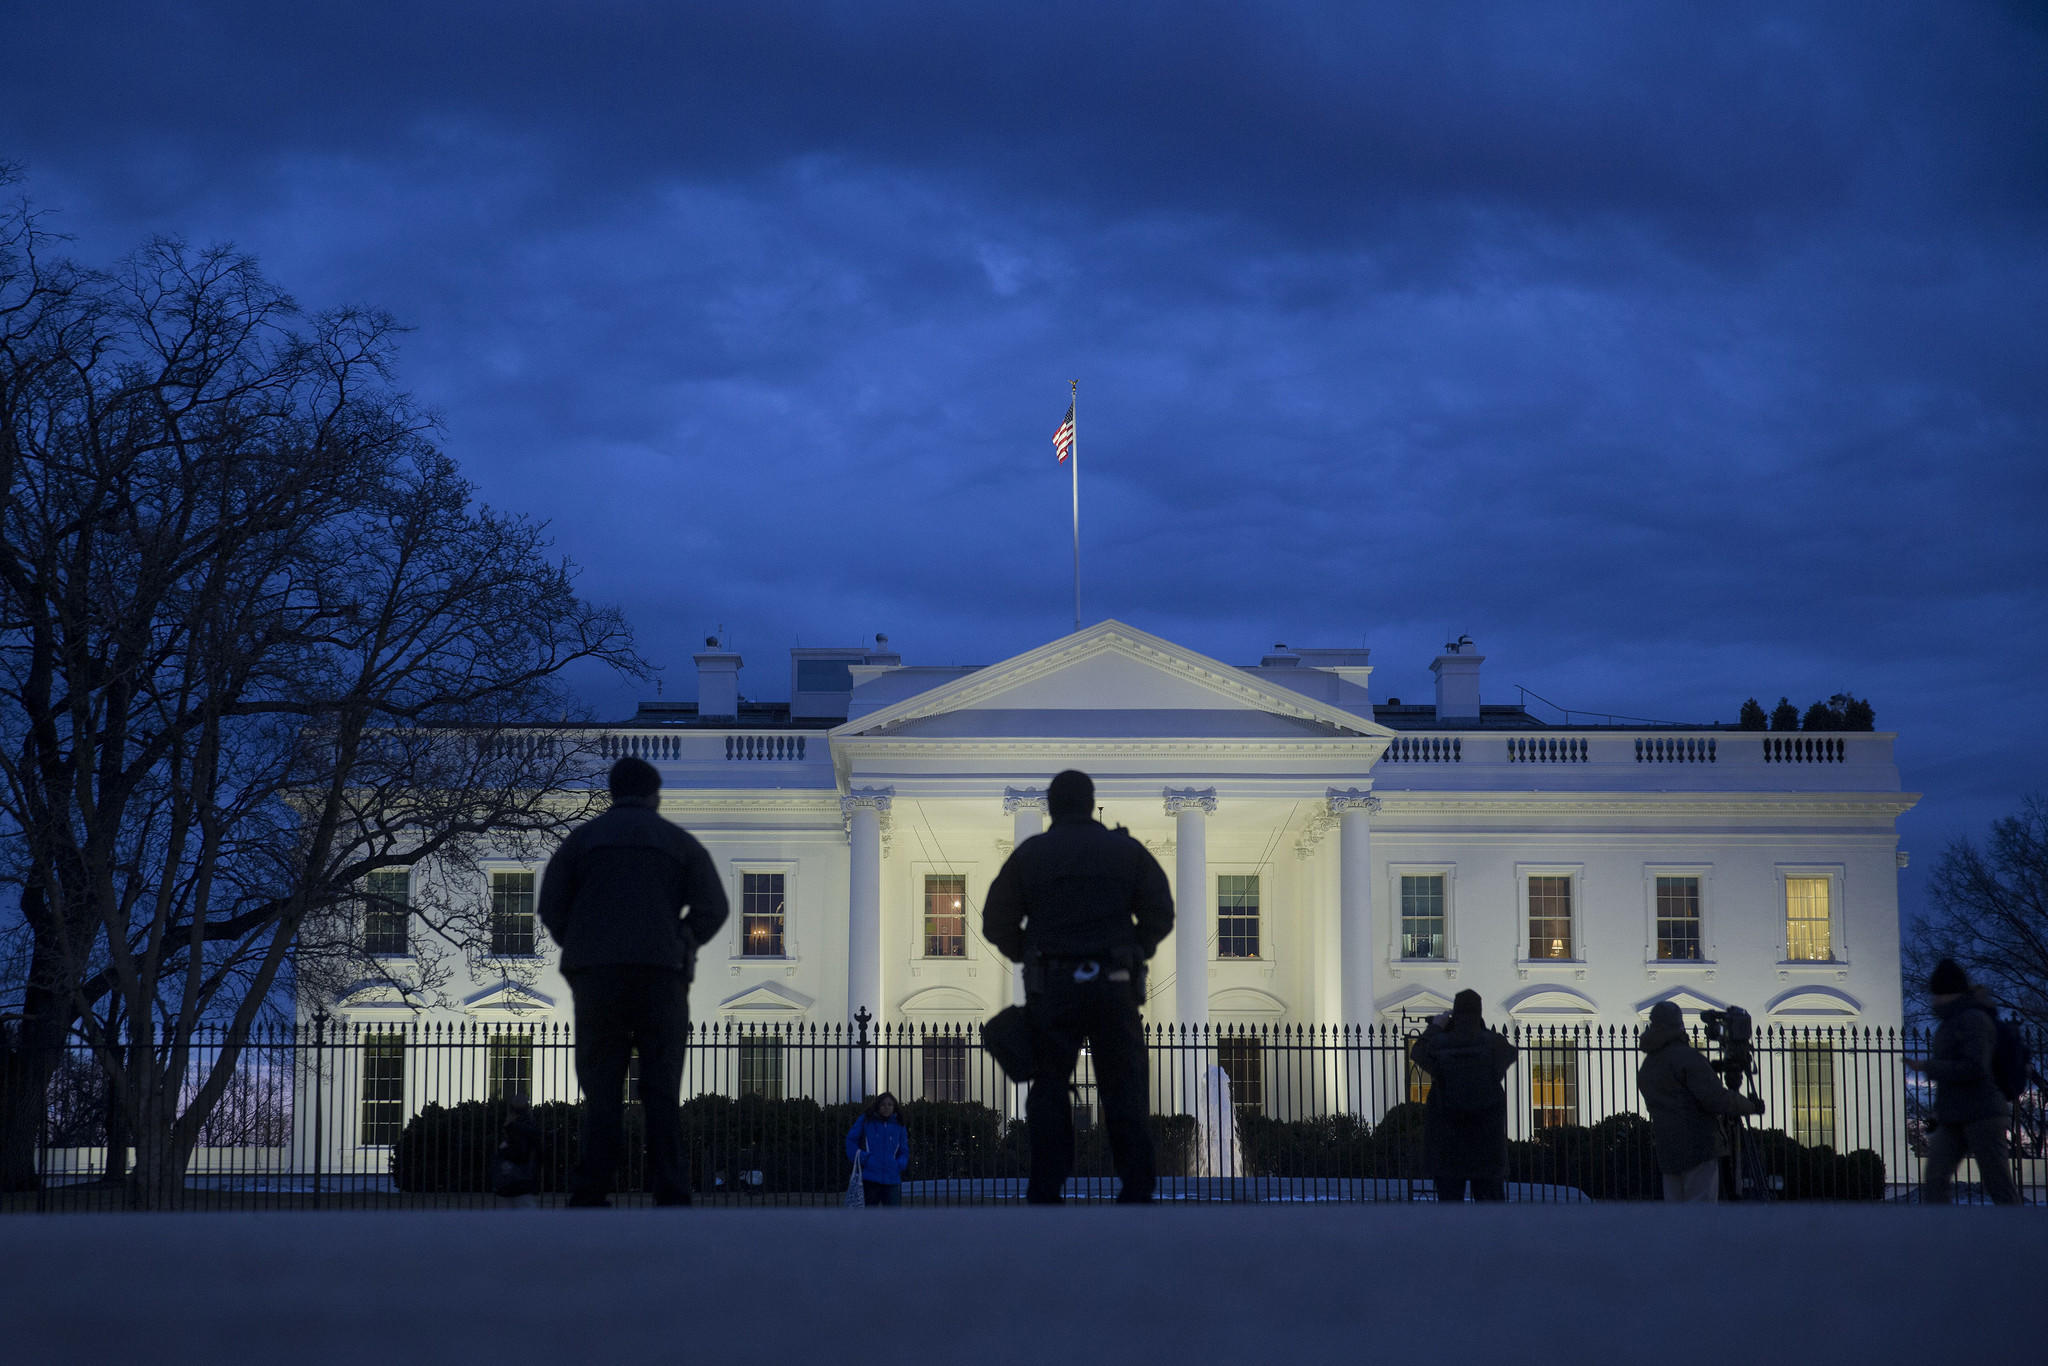 Secret Service officers stand in front of the White House in Washington, D.C.